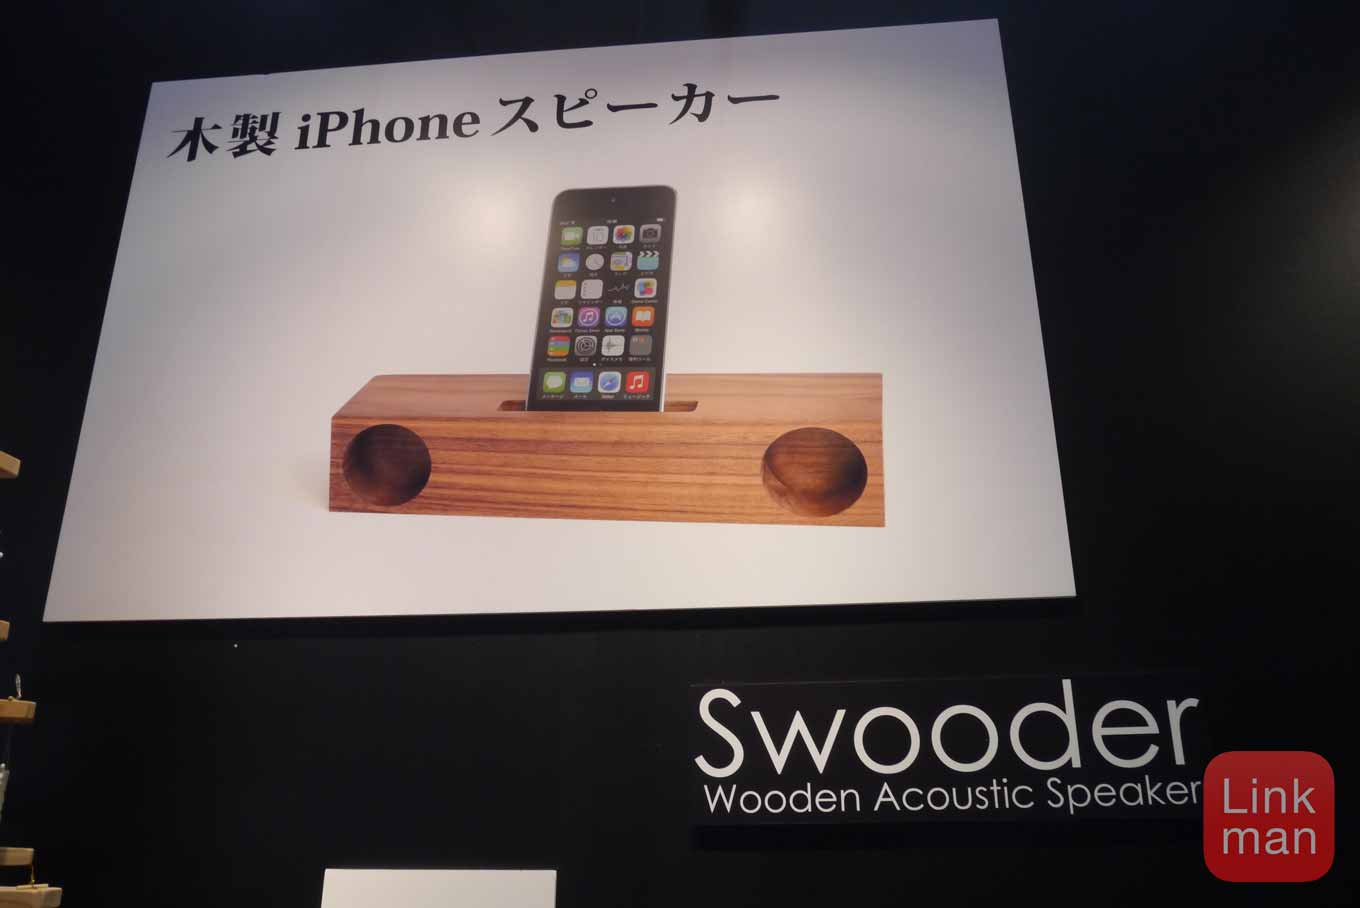 GIFTEX 2015レポート:Swooder、木製iPhoneスピーカーを展示